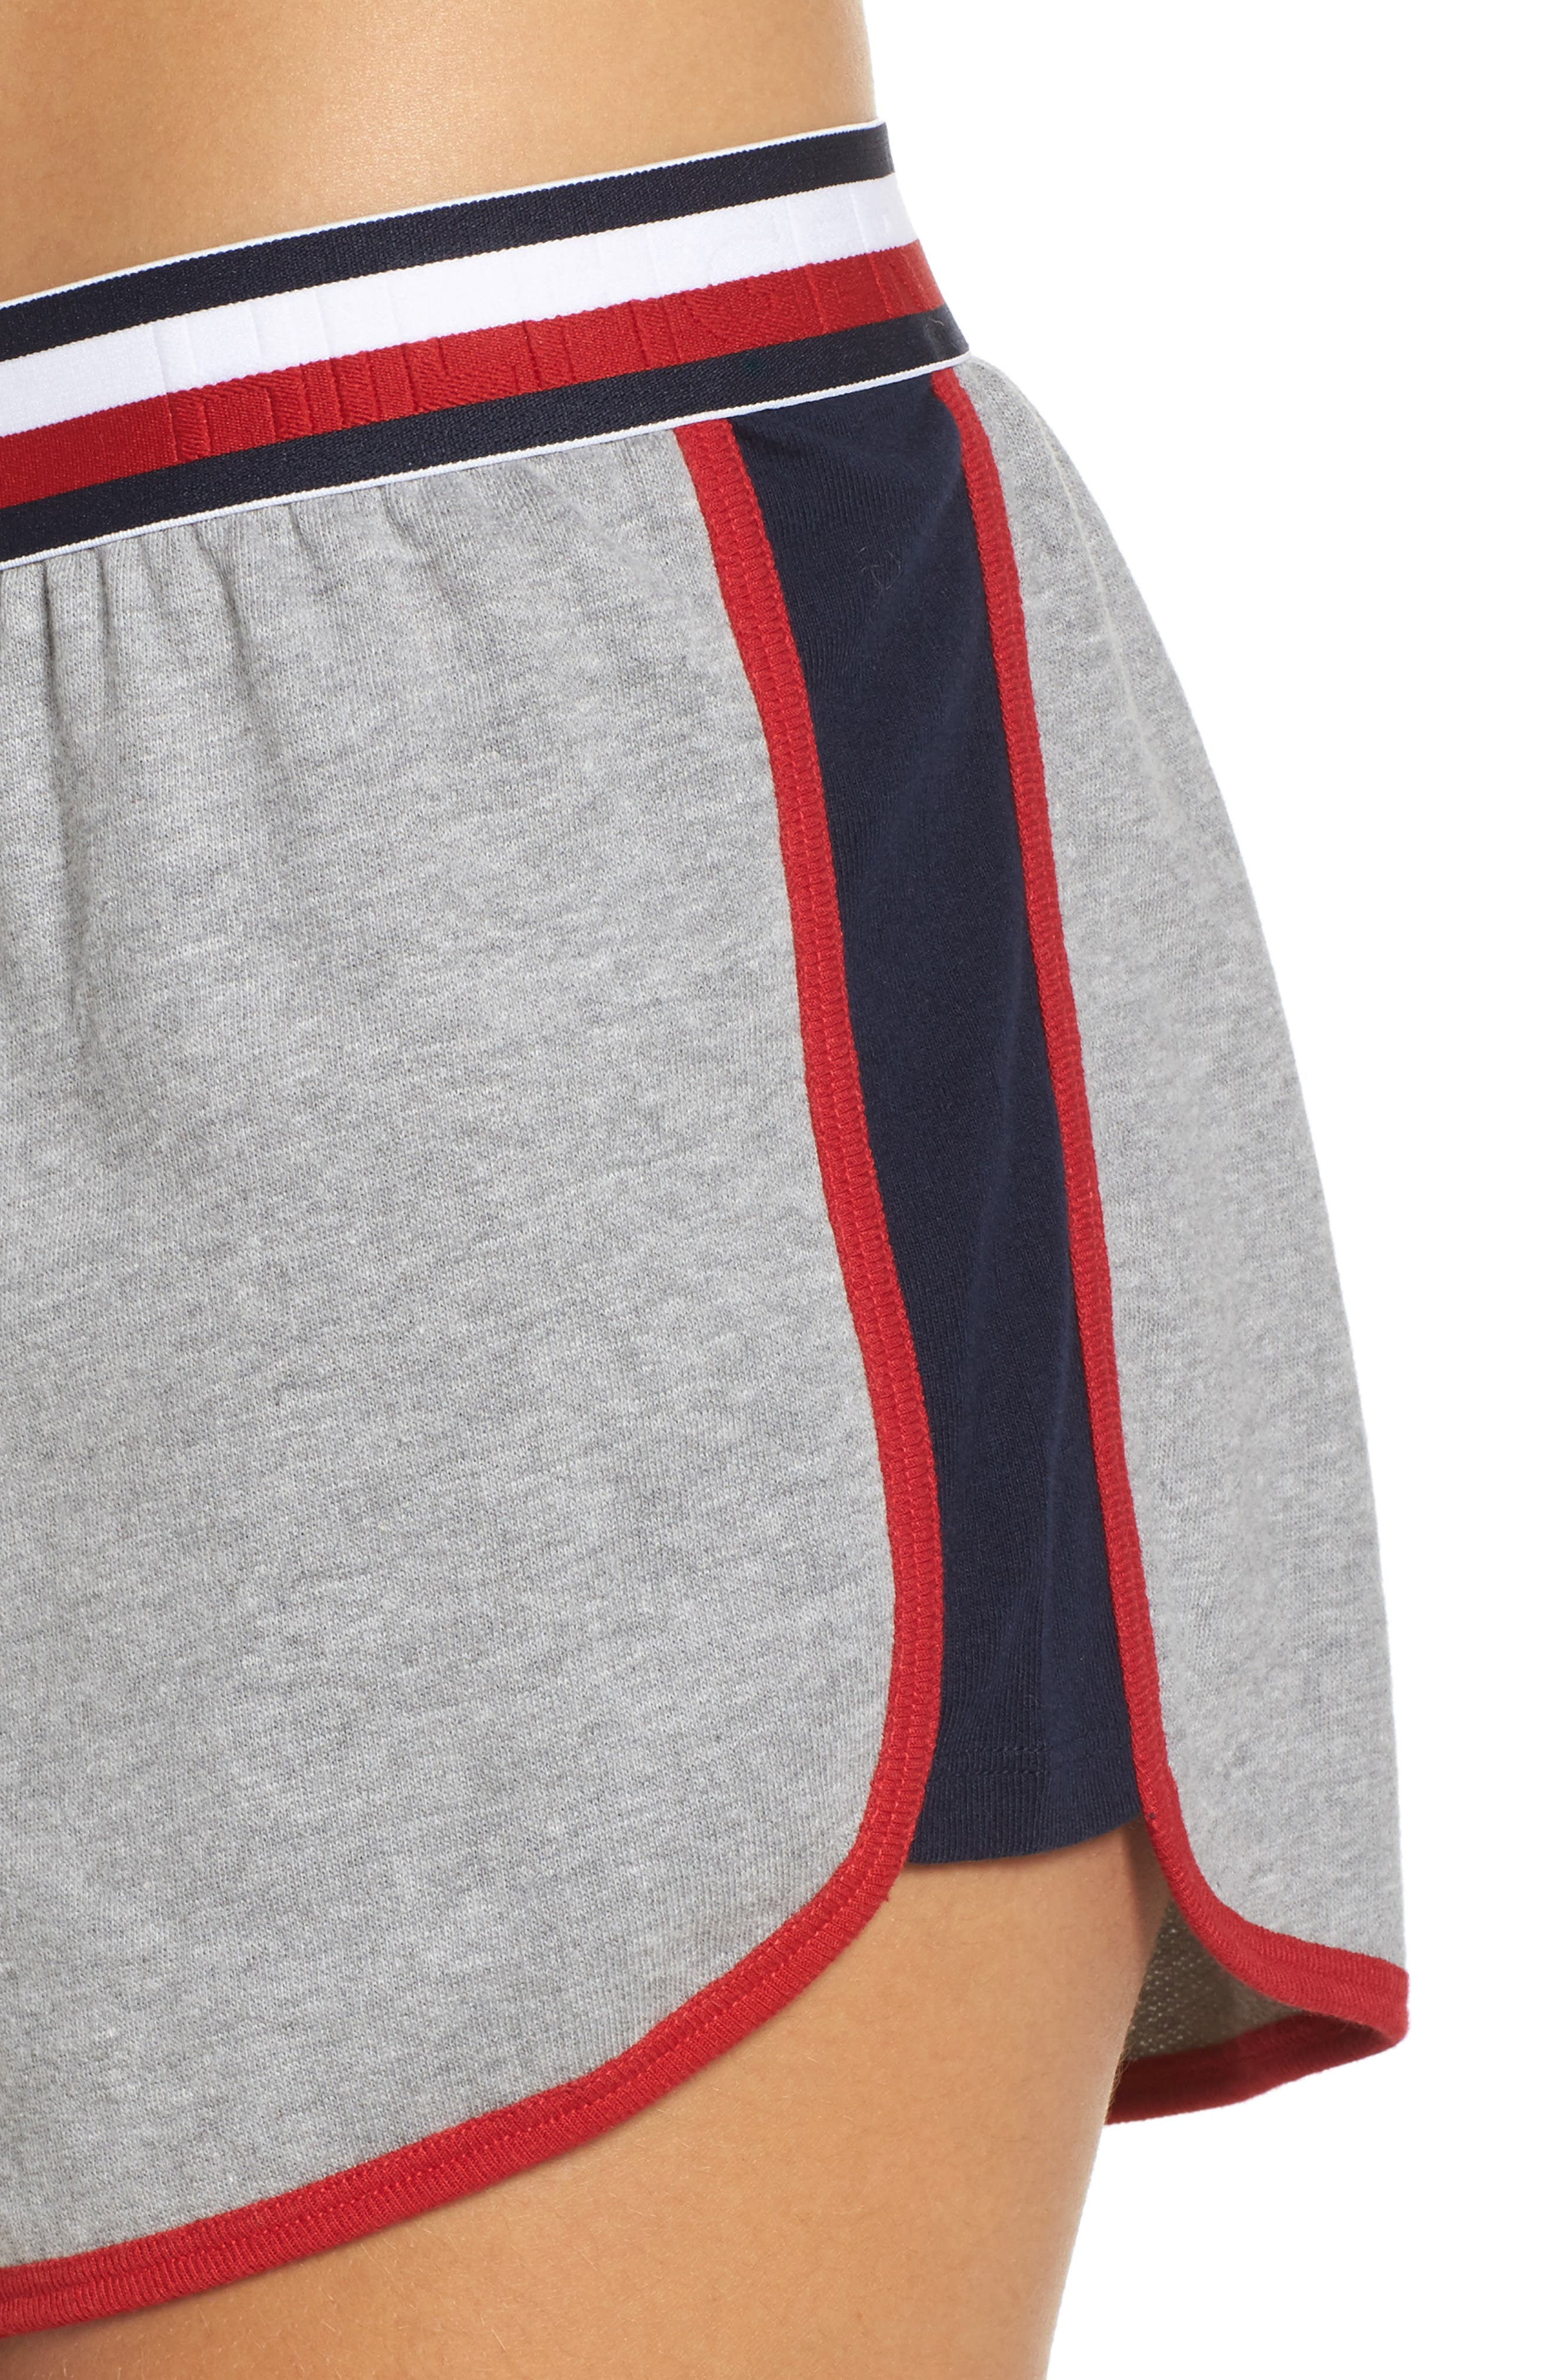 Lounge Shorts,                             Alternate thumbnail 4, color,                             020